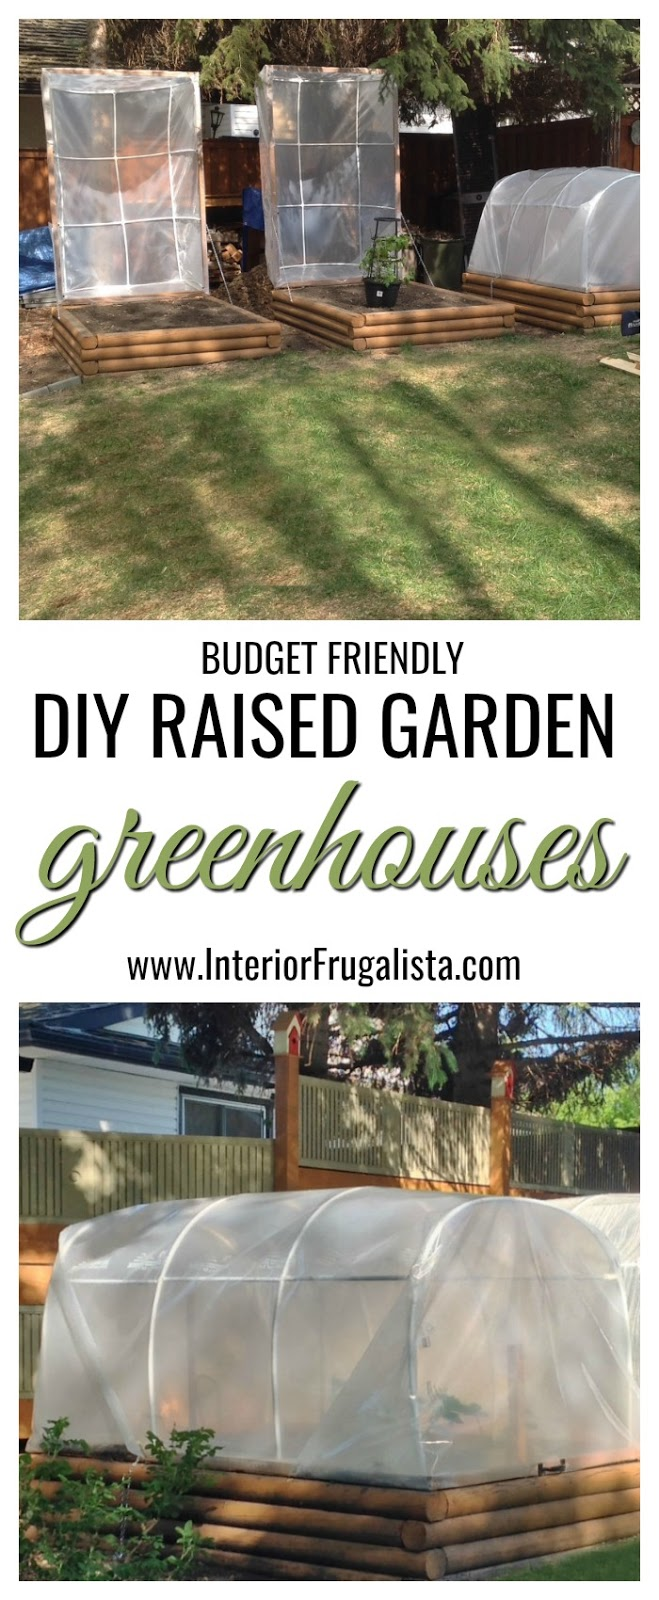 Budget-Friendly DIY Raised Garden Greenhouses